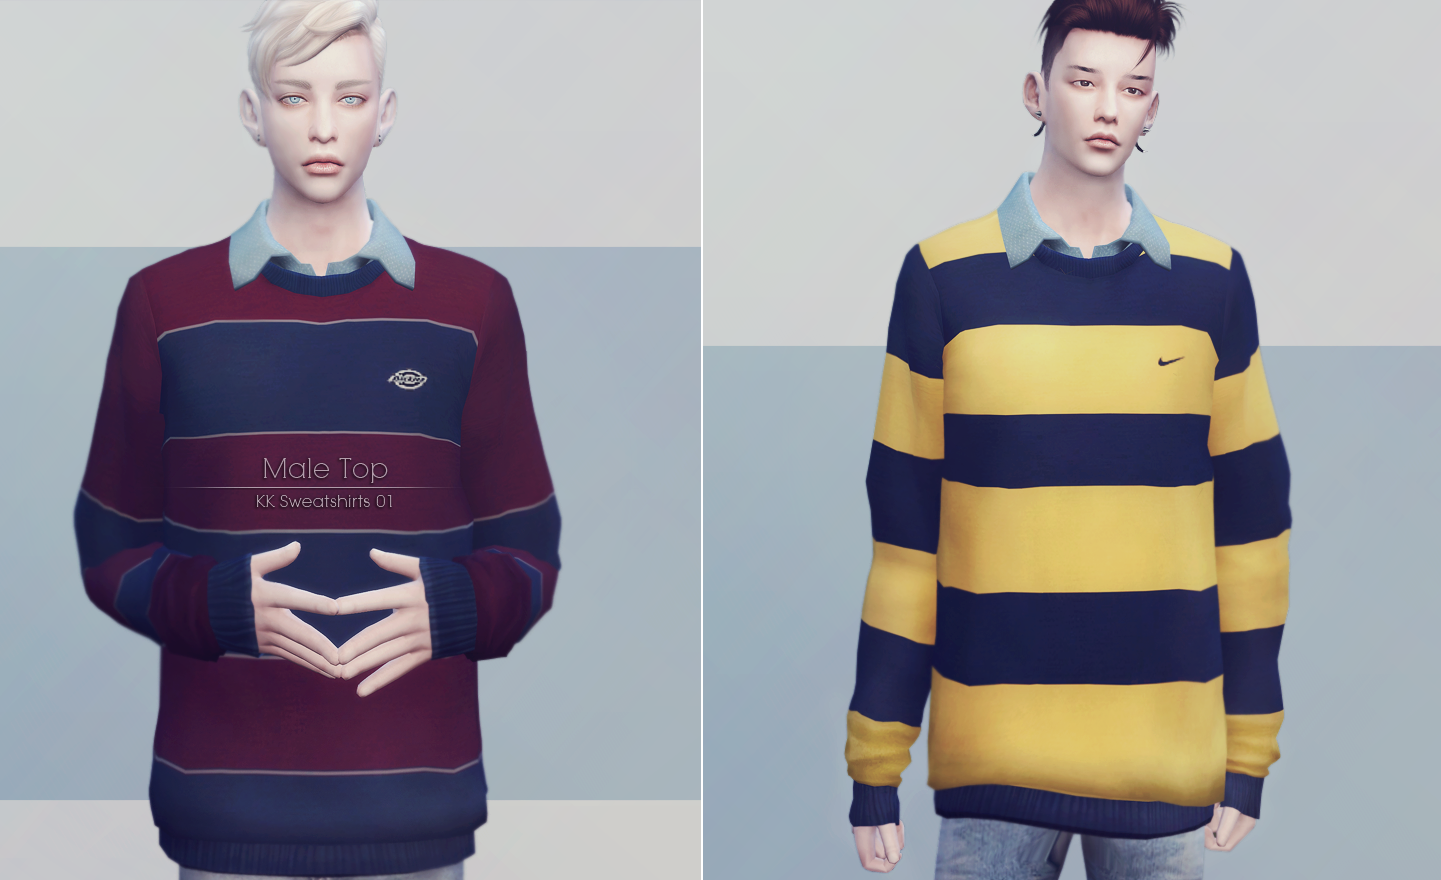 Sweatshirts for Males by Ooobsooo